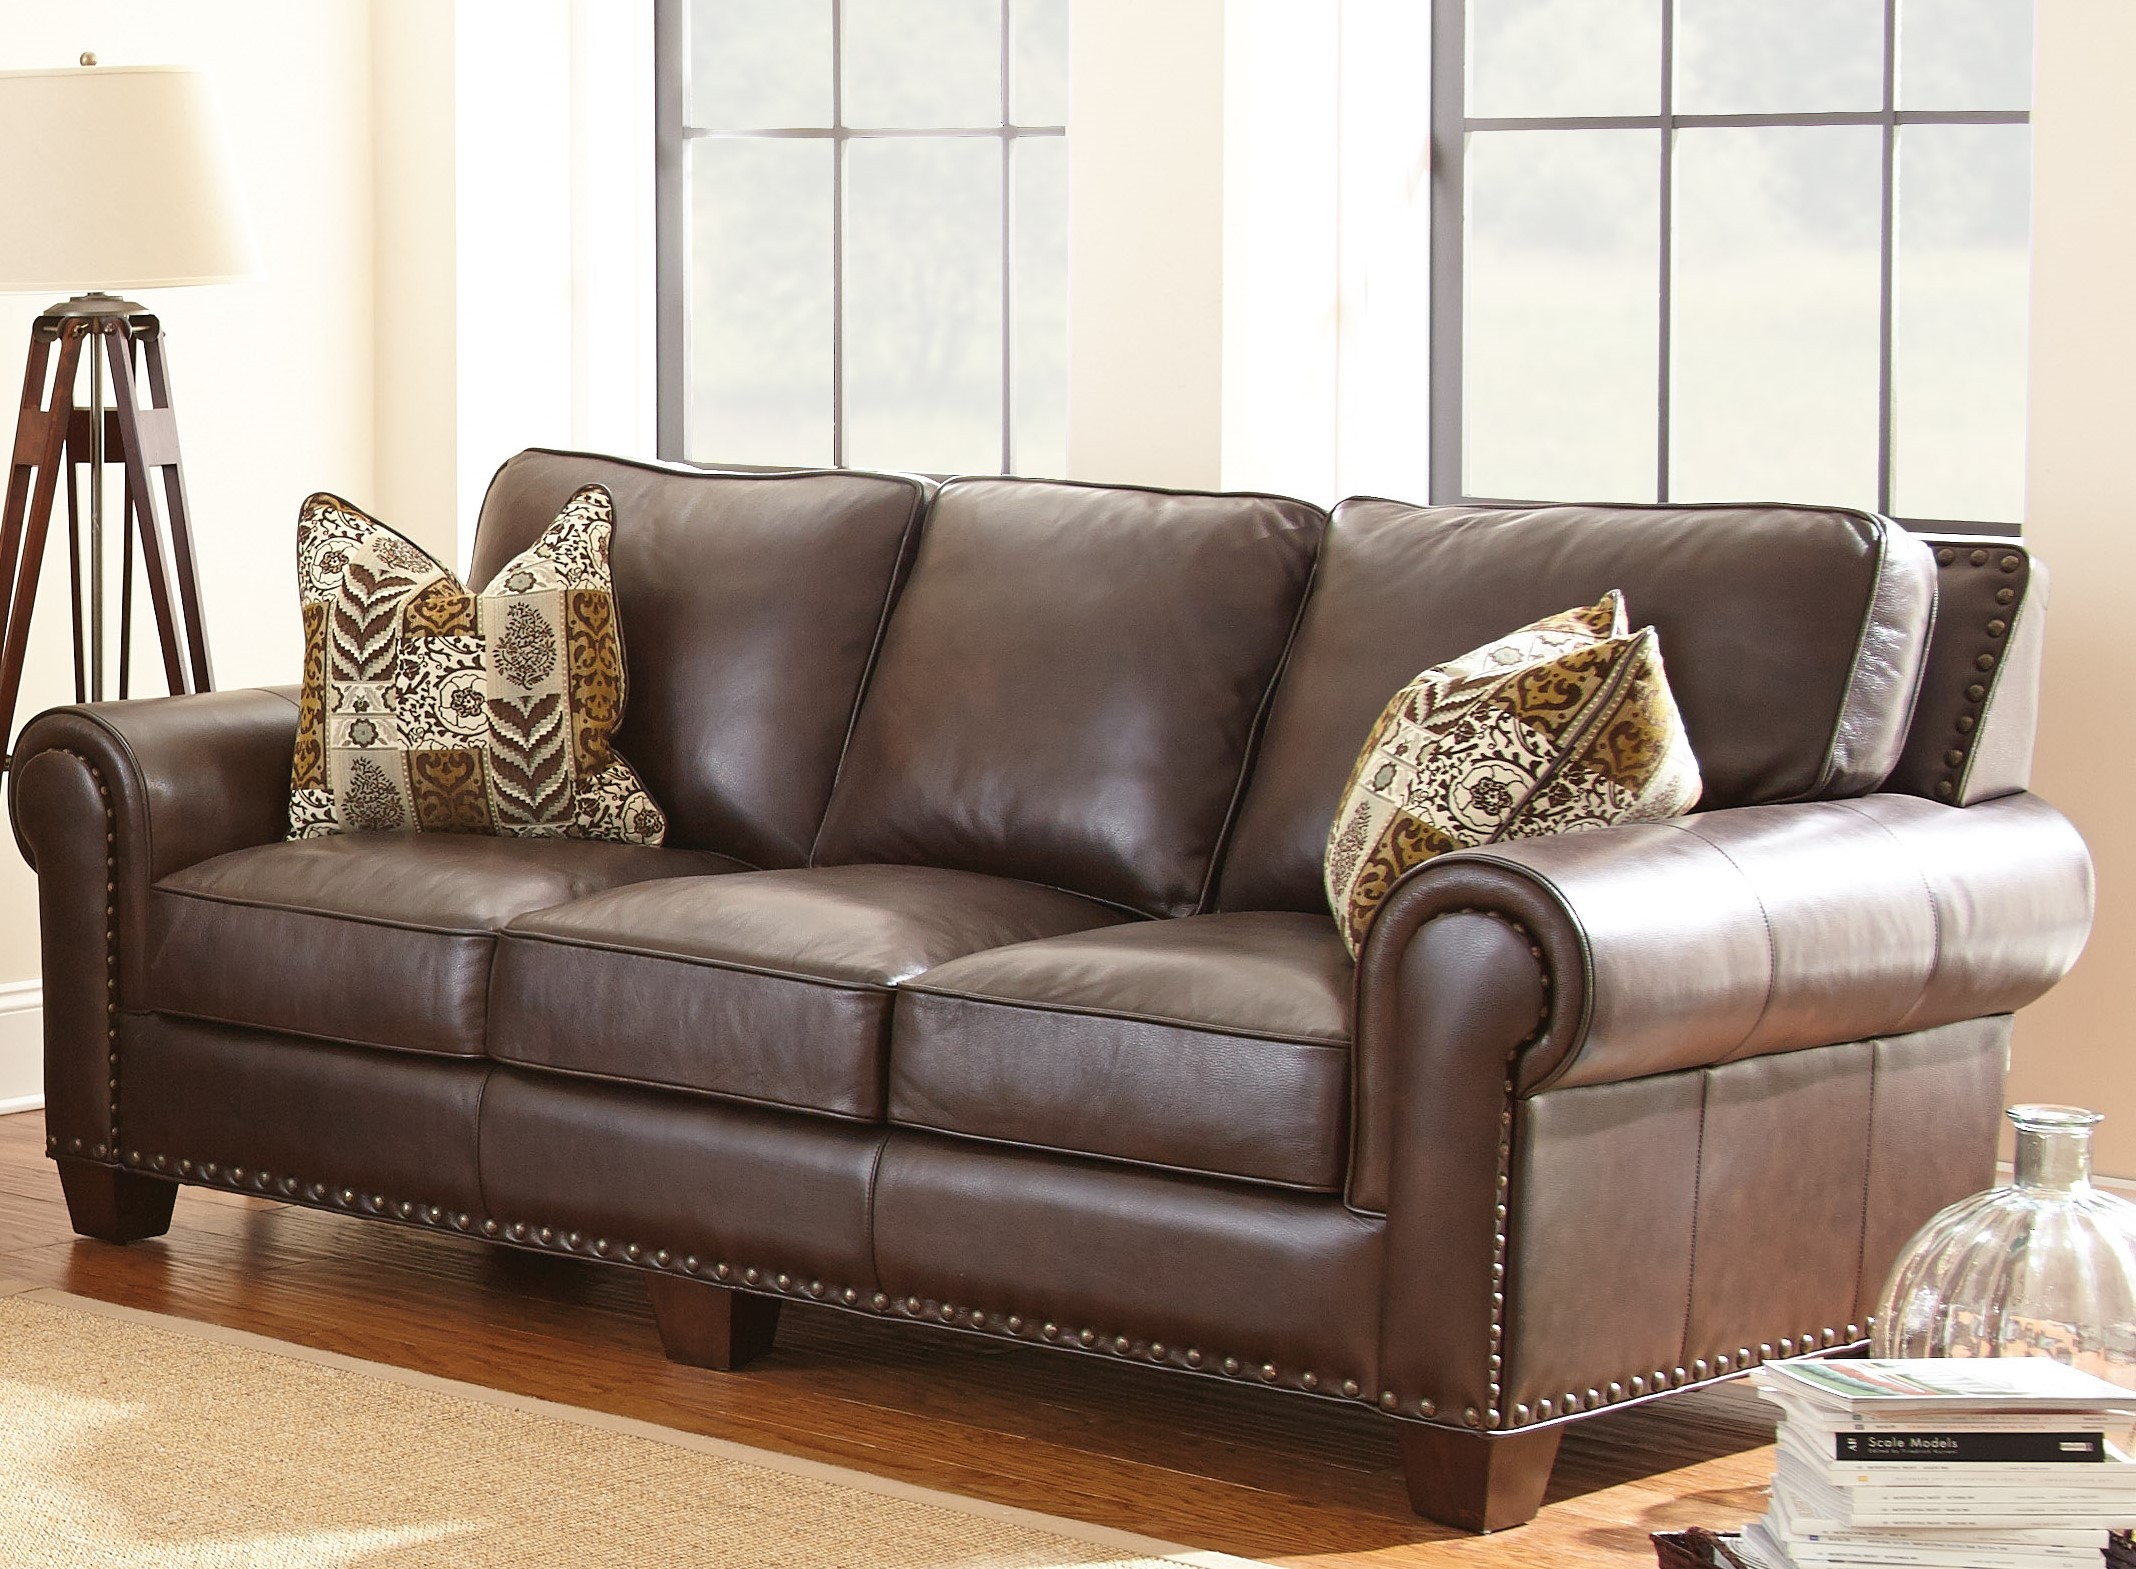 Throw Pillows For Leather Sofas : Escher Top Grain Leather Sofa with 2 Accent Pillows from Steve Silver (SR810S) Coleman Furniture